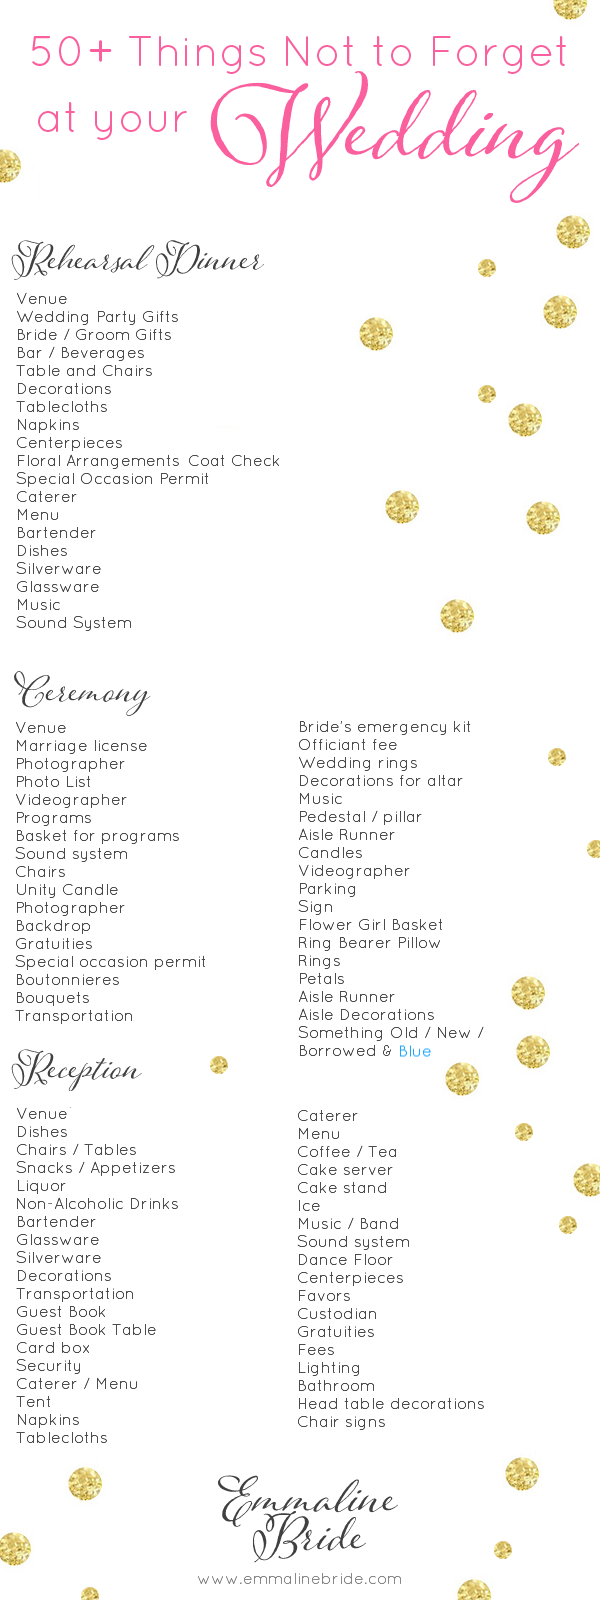 Wedding Day Checklist Printable: 50+ Things Not to Forget